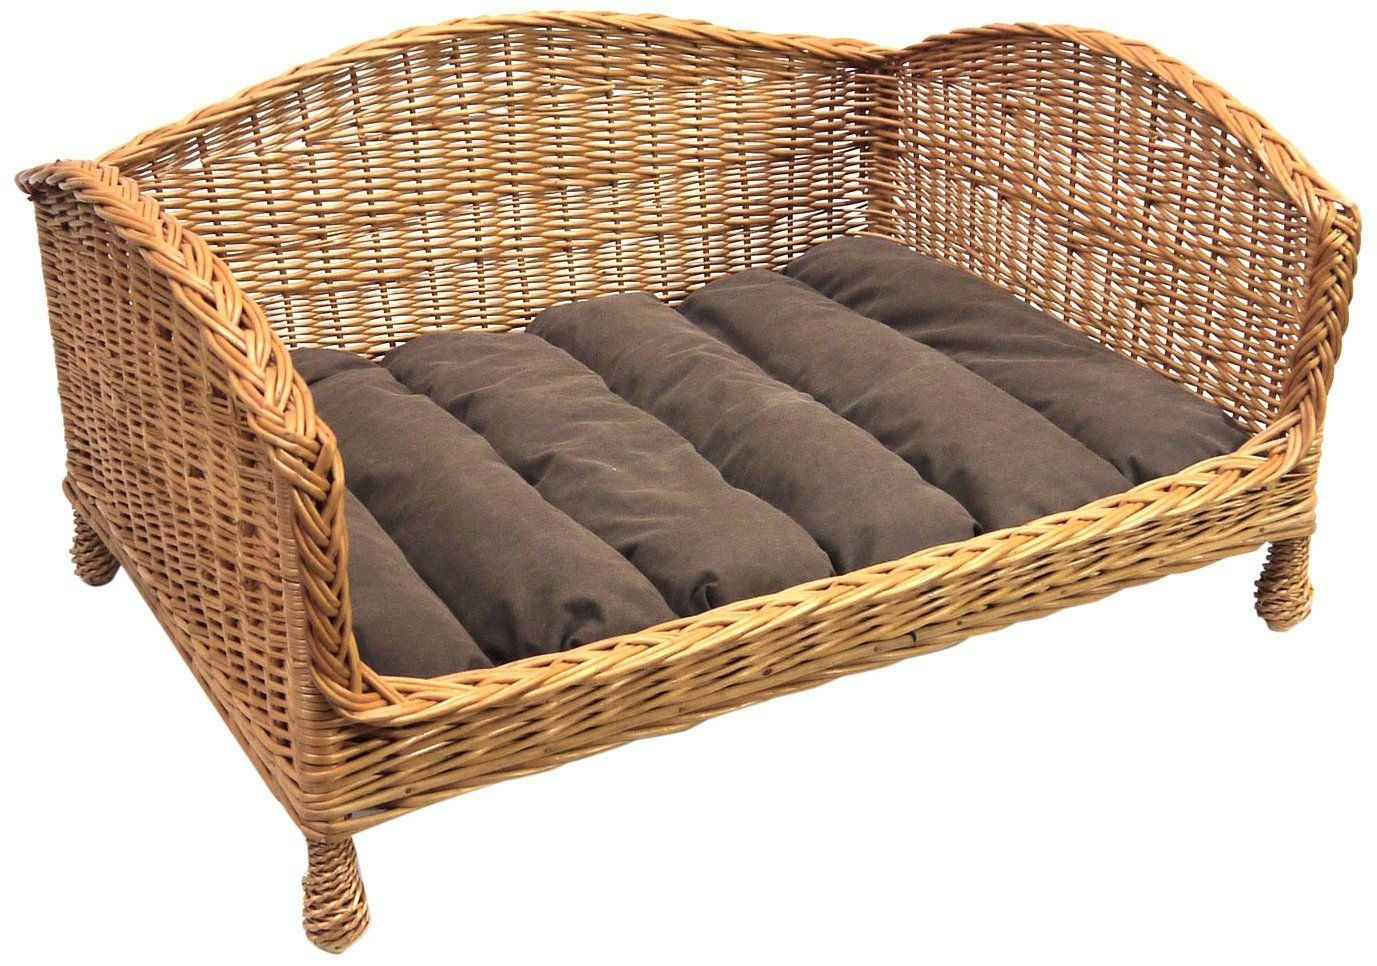 Elevated luxury wicker dog bed with cushion, XL UK